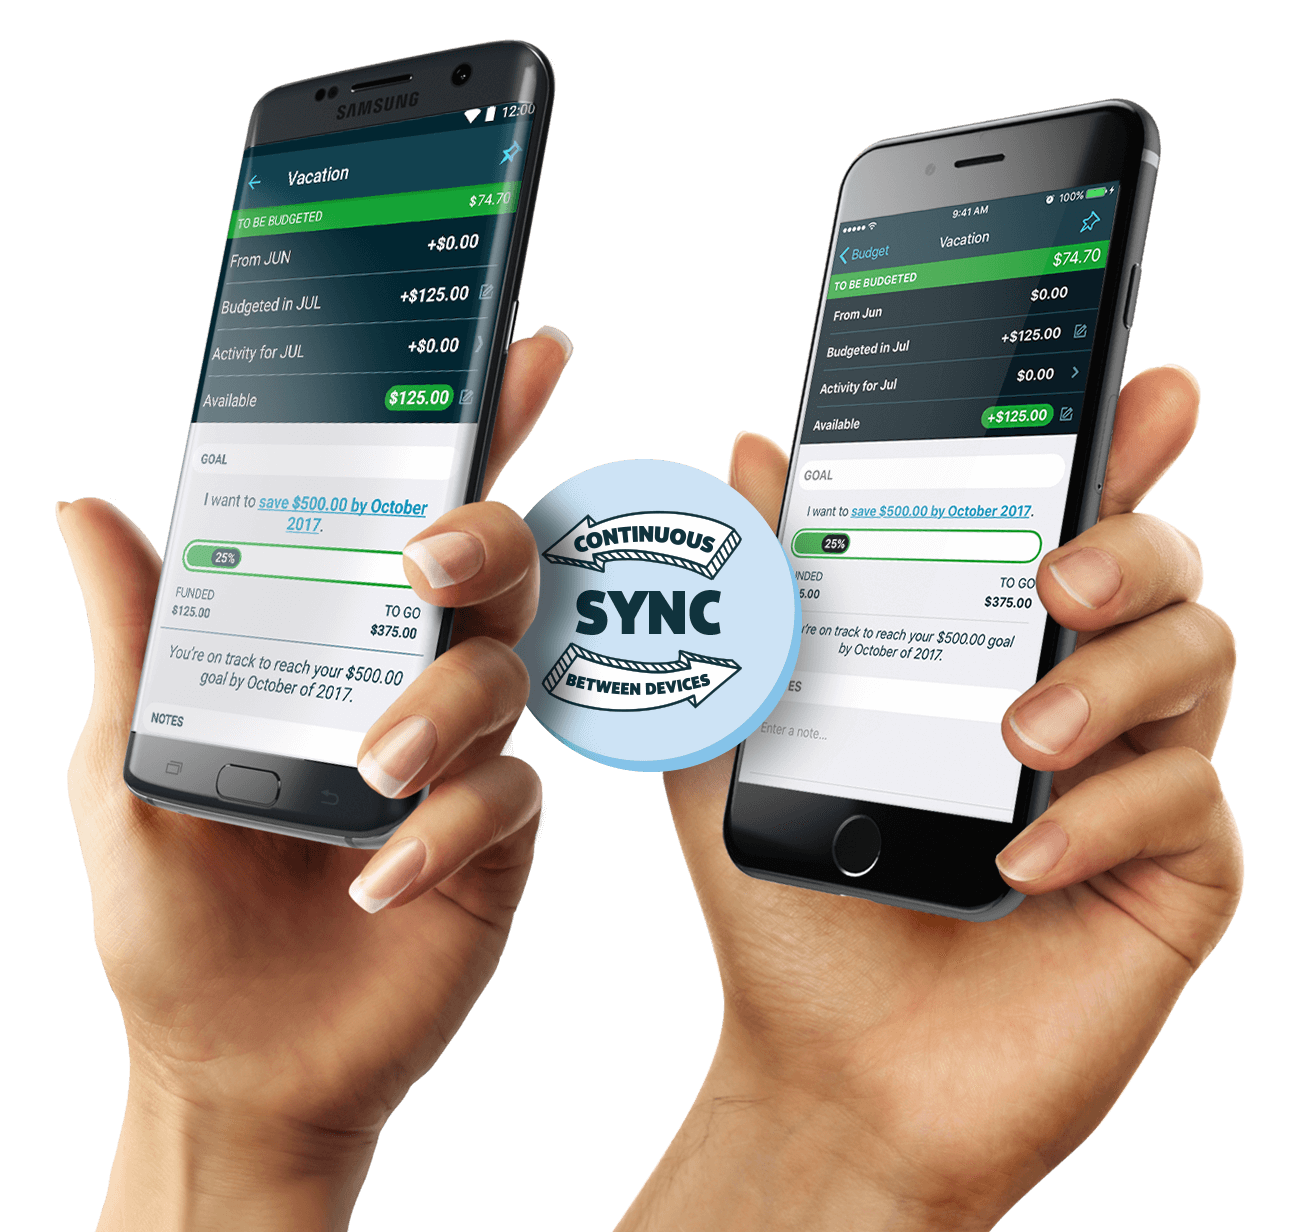 Sync YNAB between all of your devices - iOS, Android, PC, Mac